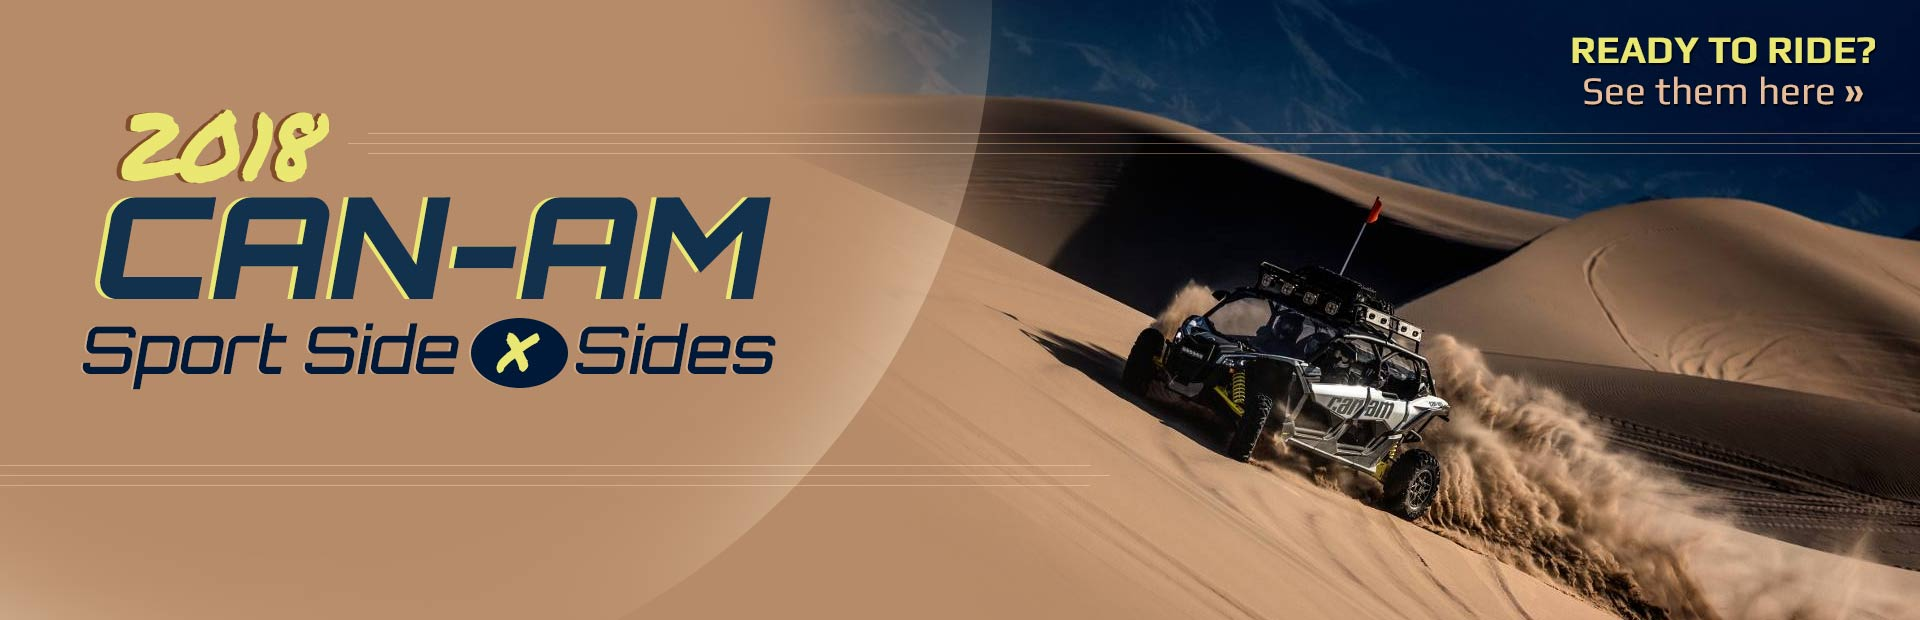 2018 Can-Am Sport Side x Sides: Click here to view the models.